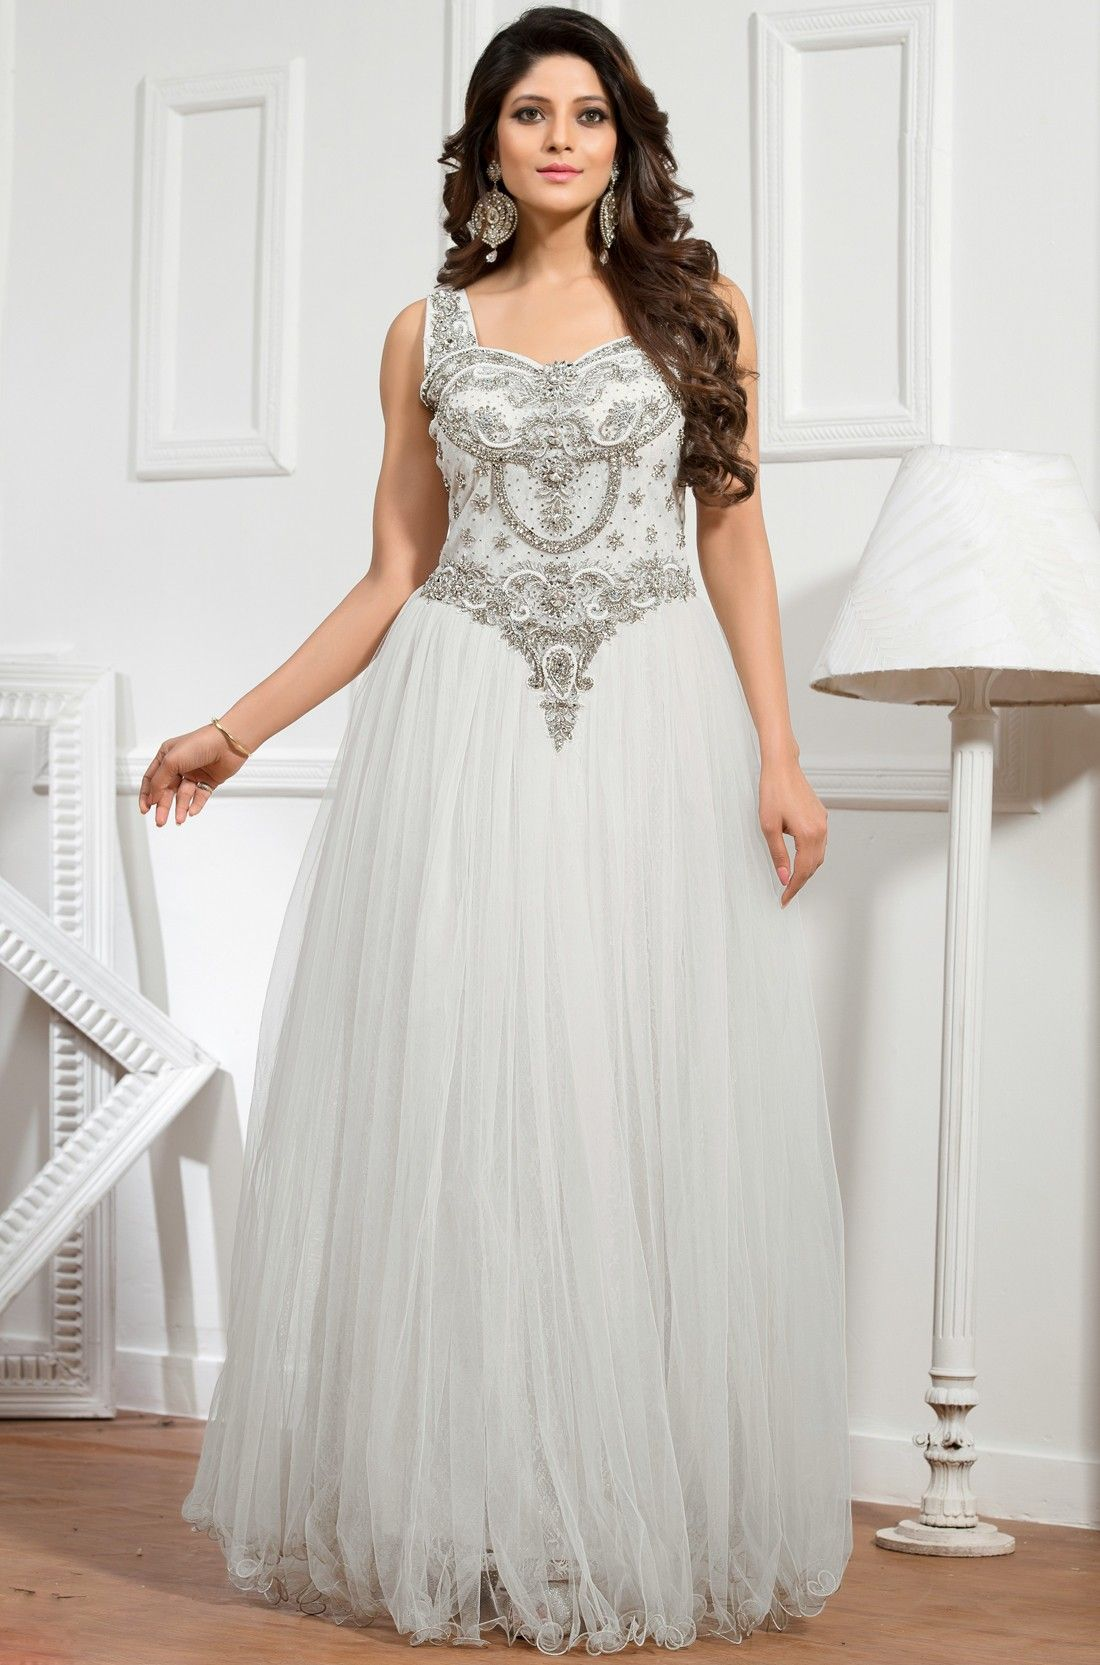 Off White Net Readymade Gown - #Indian-Gowns #Indian-Designer-Gowns #Evening-Party-Gown #Readymade-Gowns